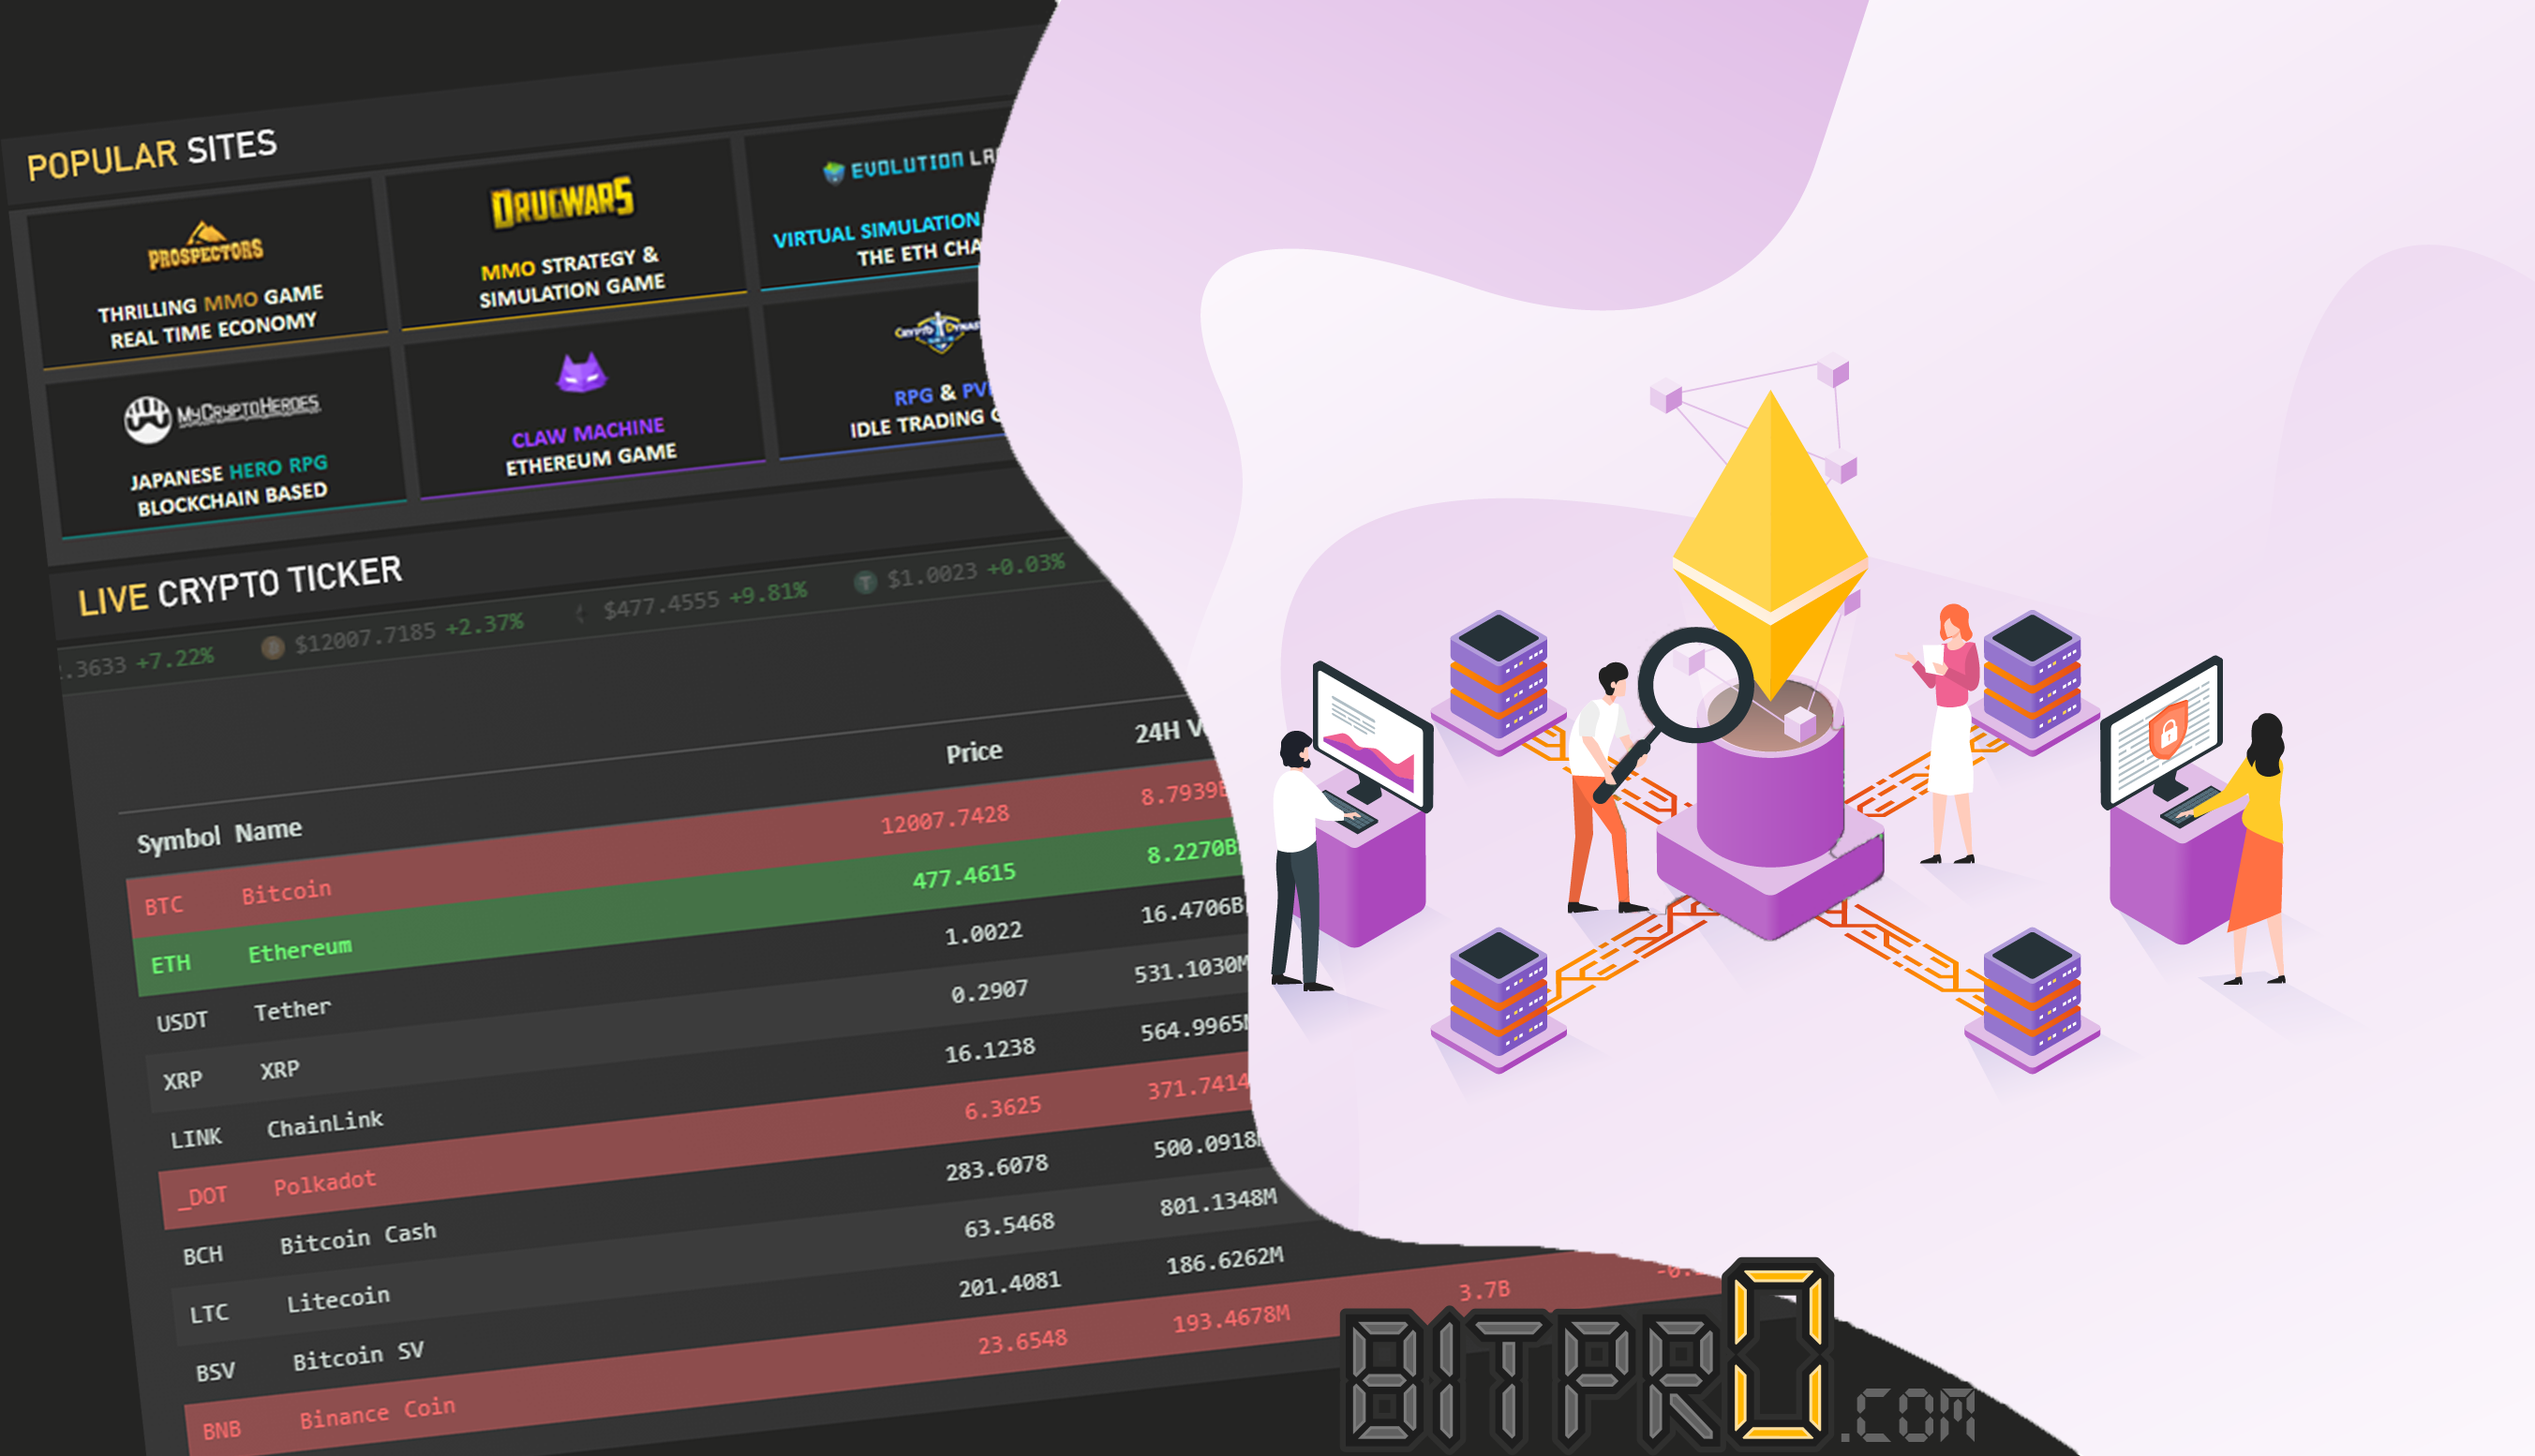 /from-crypto-exchanges-to-casinos-find-everything-related-to-crypto-on-bitpr0-zc7y3we9 feature image